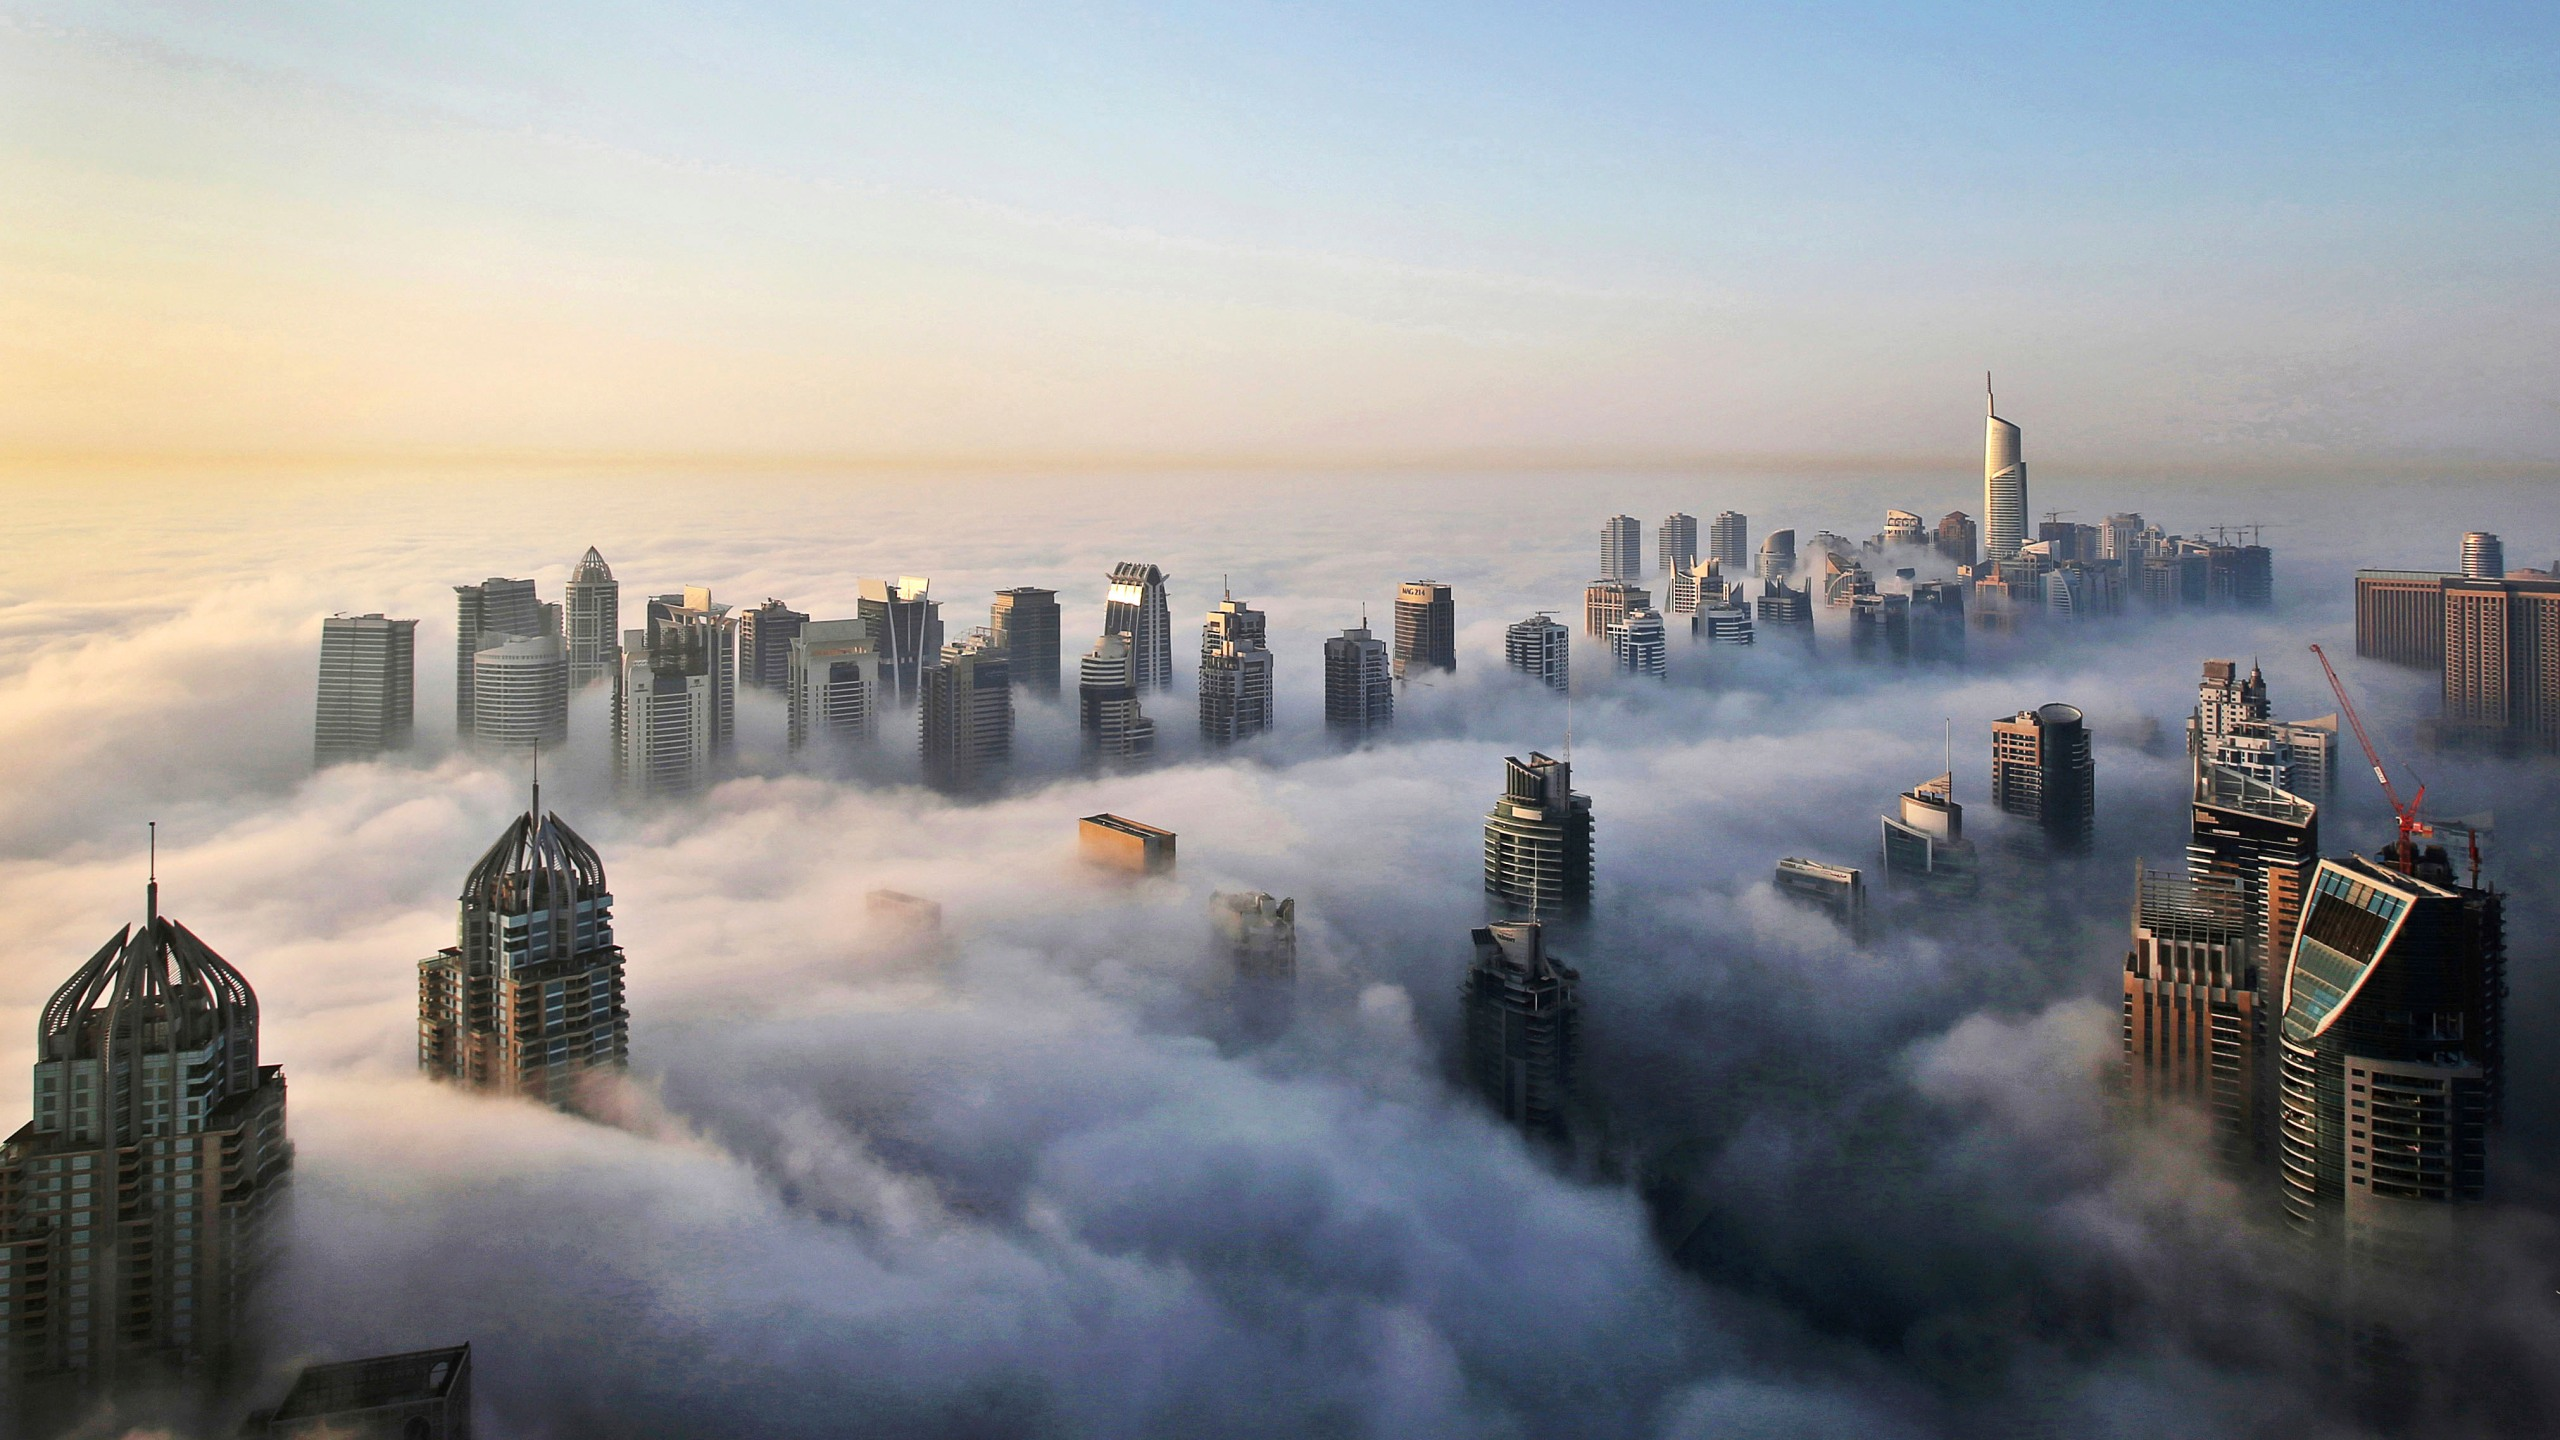 In this Monday, Oct. 5, 2015 file photo, a thick blanket of early morning fog partially shrouds the skyscrapers of the Marina and Jumeirah Lake Towers districts of Dubai, United Arab Emirates. (Kamran Jebreili/AP Photo)